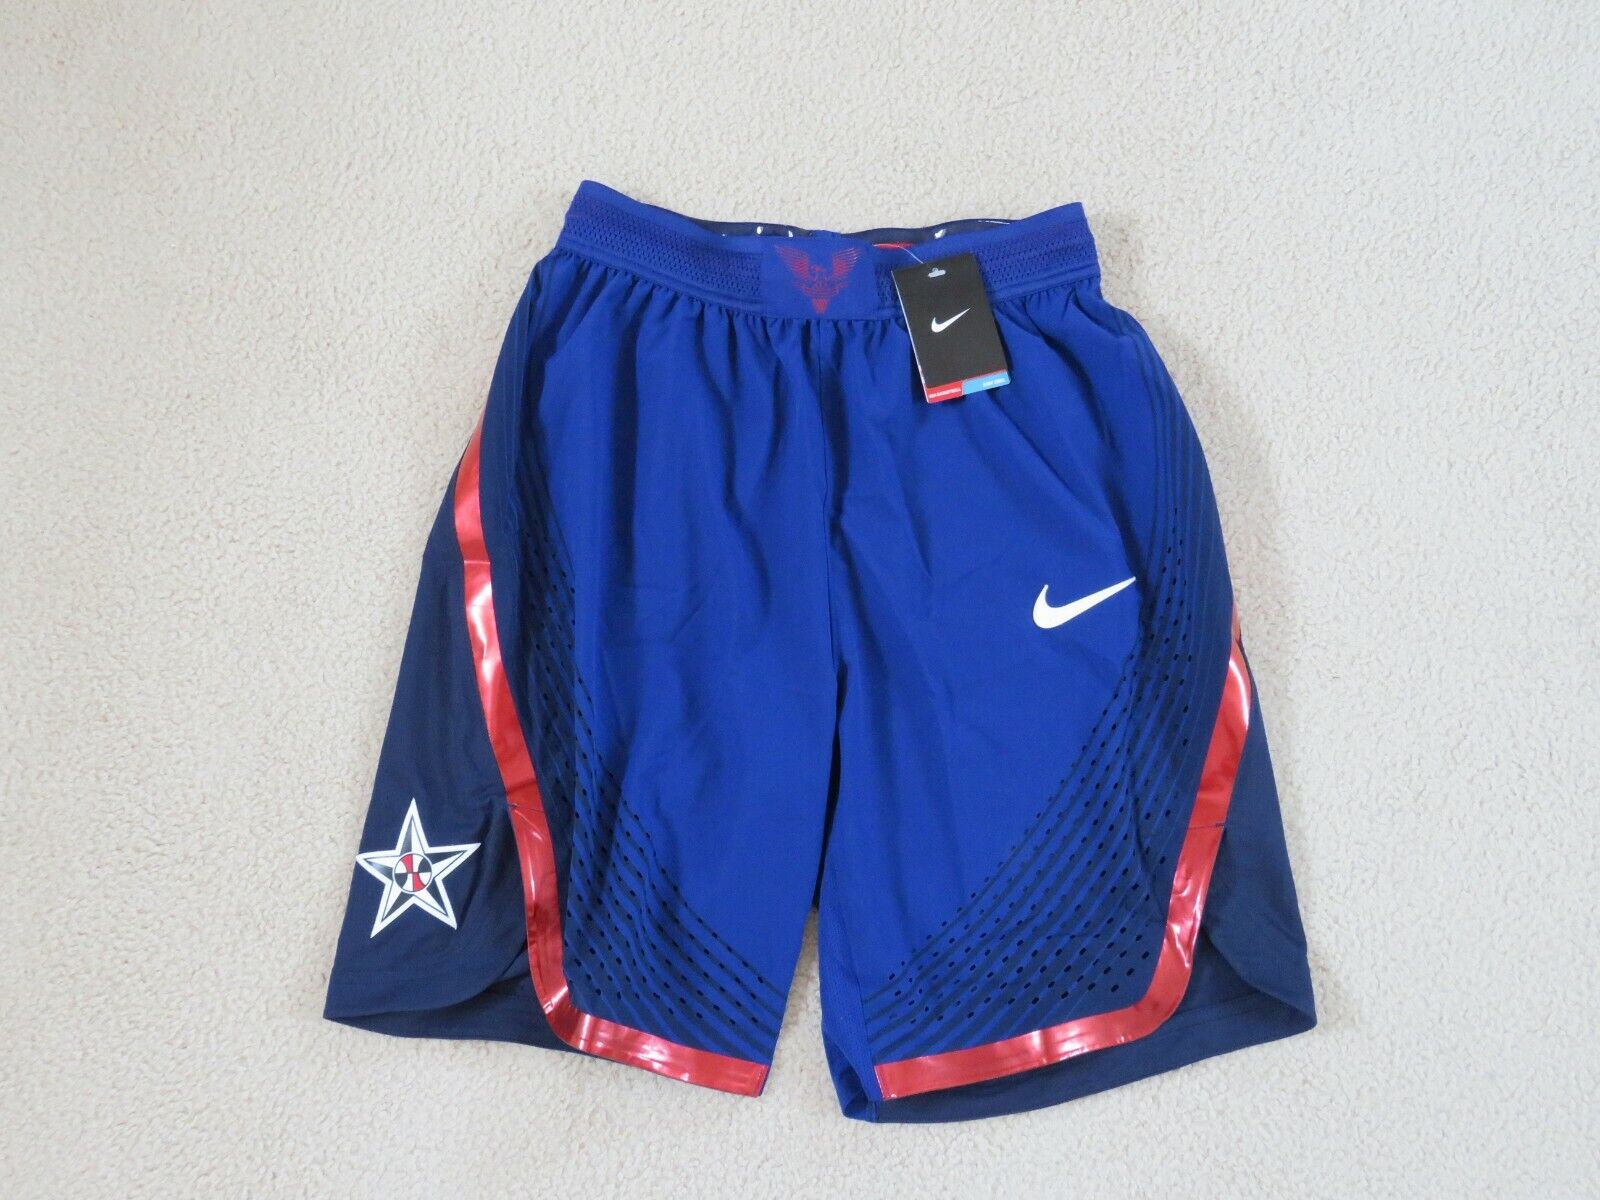 Nike Authentic NBA Team USA Official Players Worn Basketball